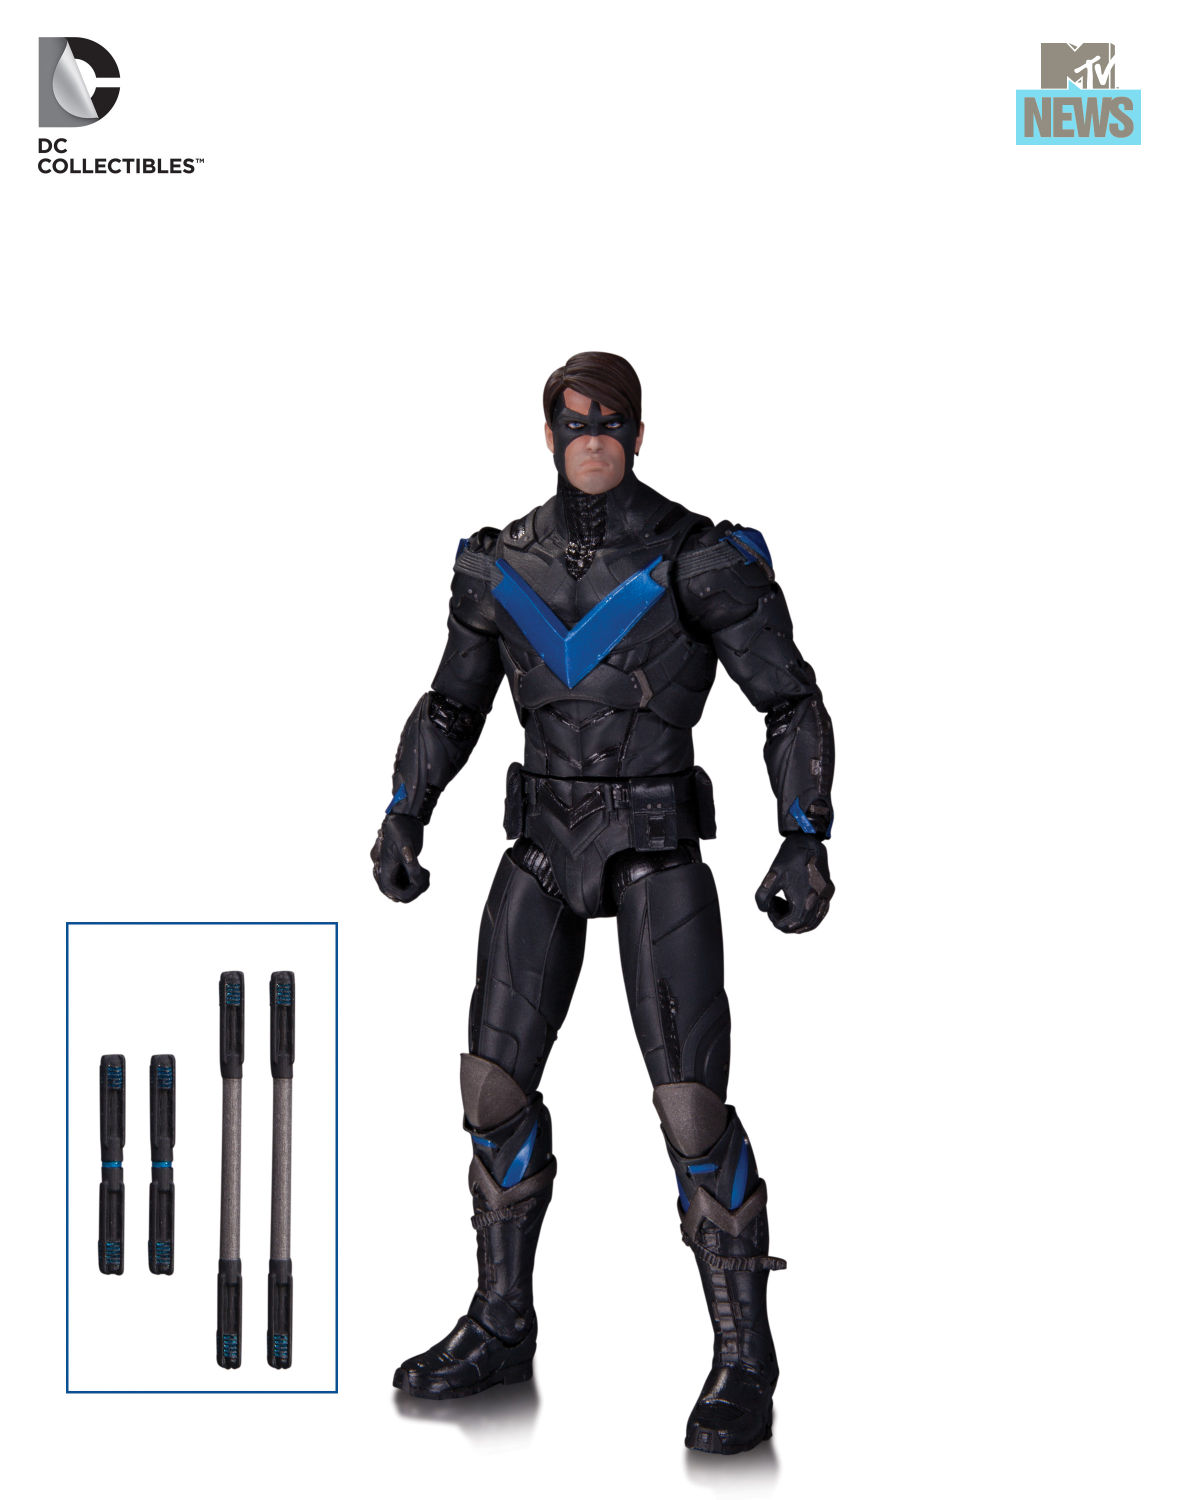 DC Collectibles Arkham Knight Wave 2 Figures Announced